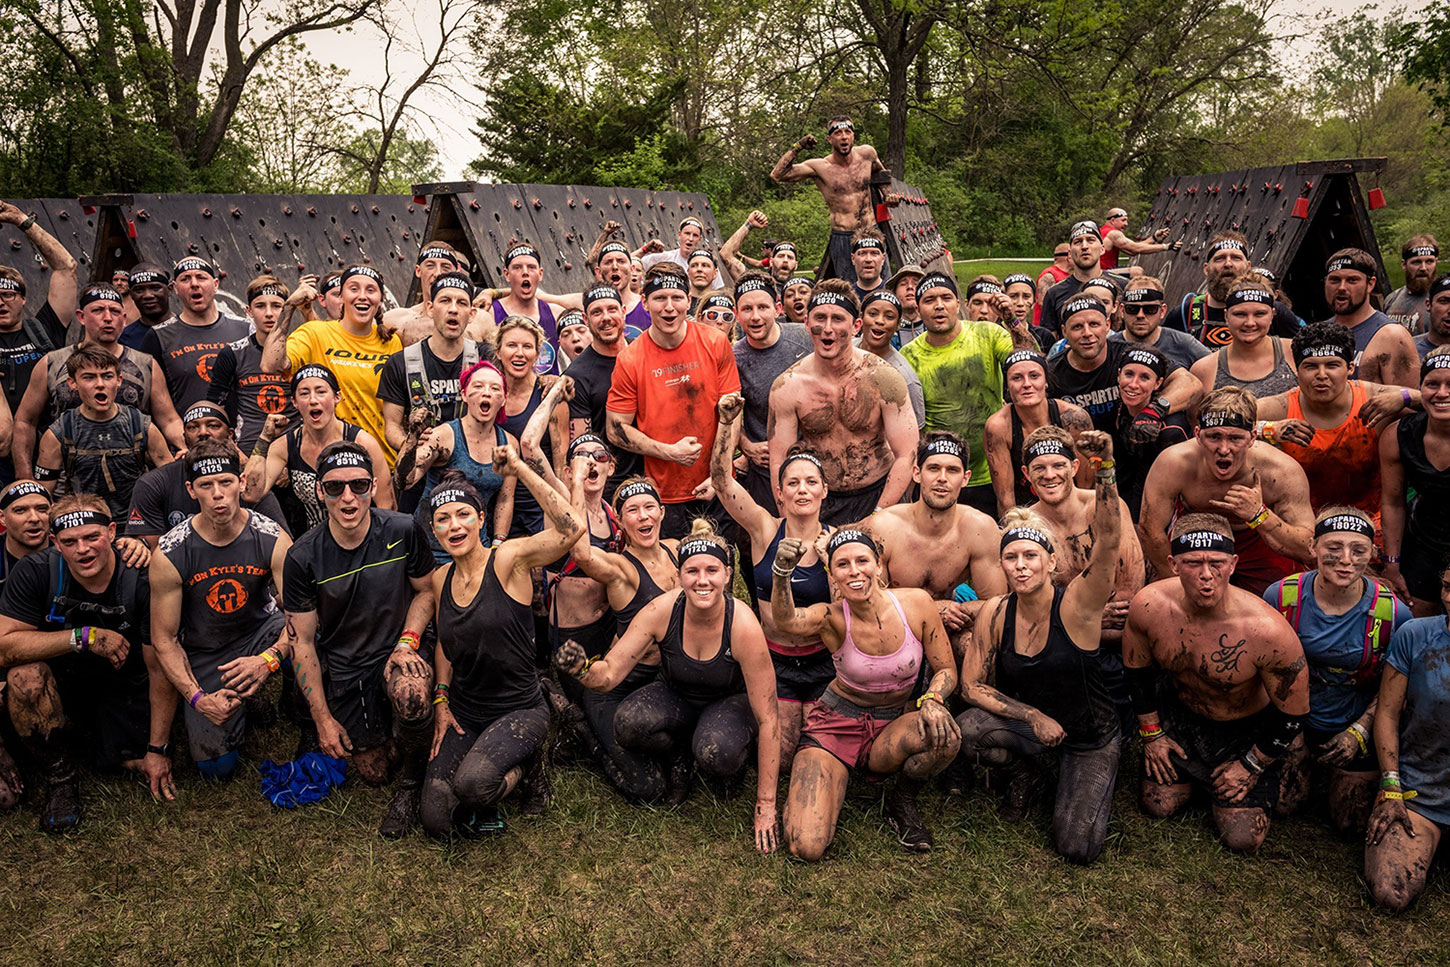 Spartan Chicago Sprint and Kids Race Weekend at the Lake County Fairgrounds & Event Center